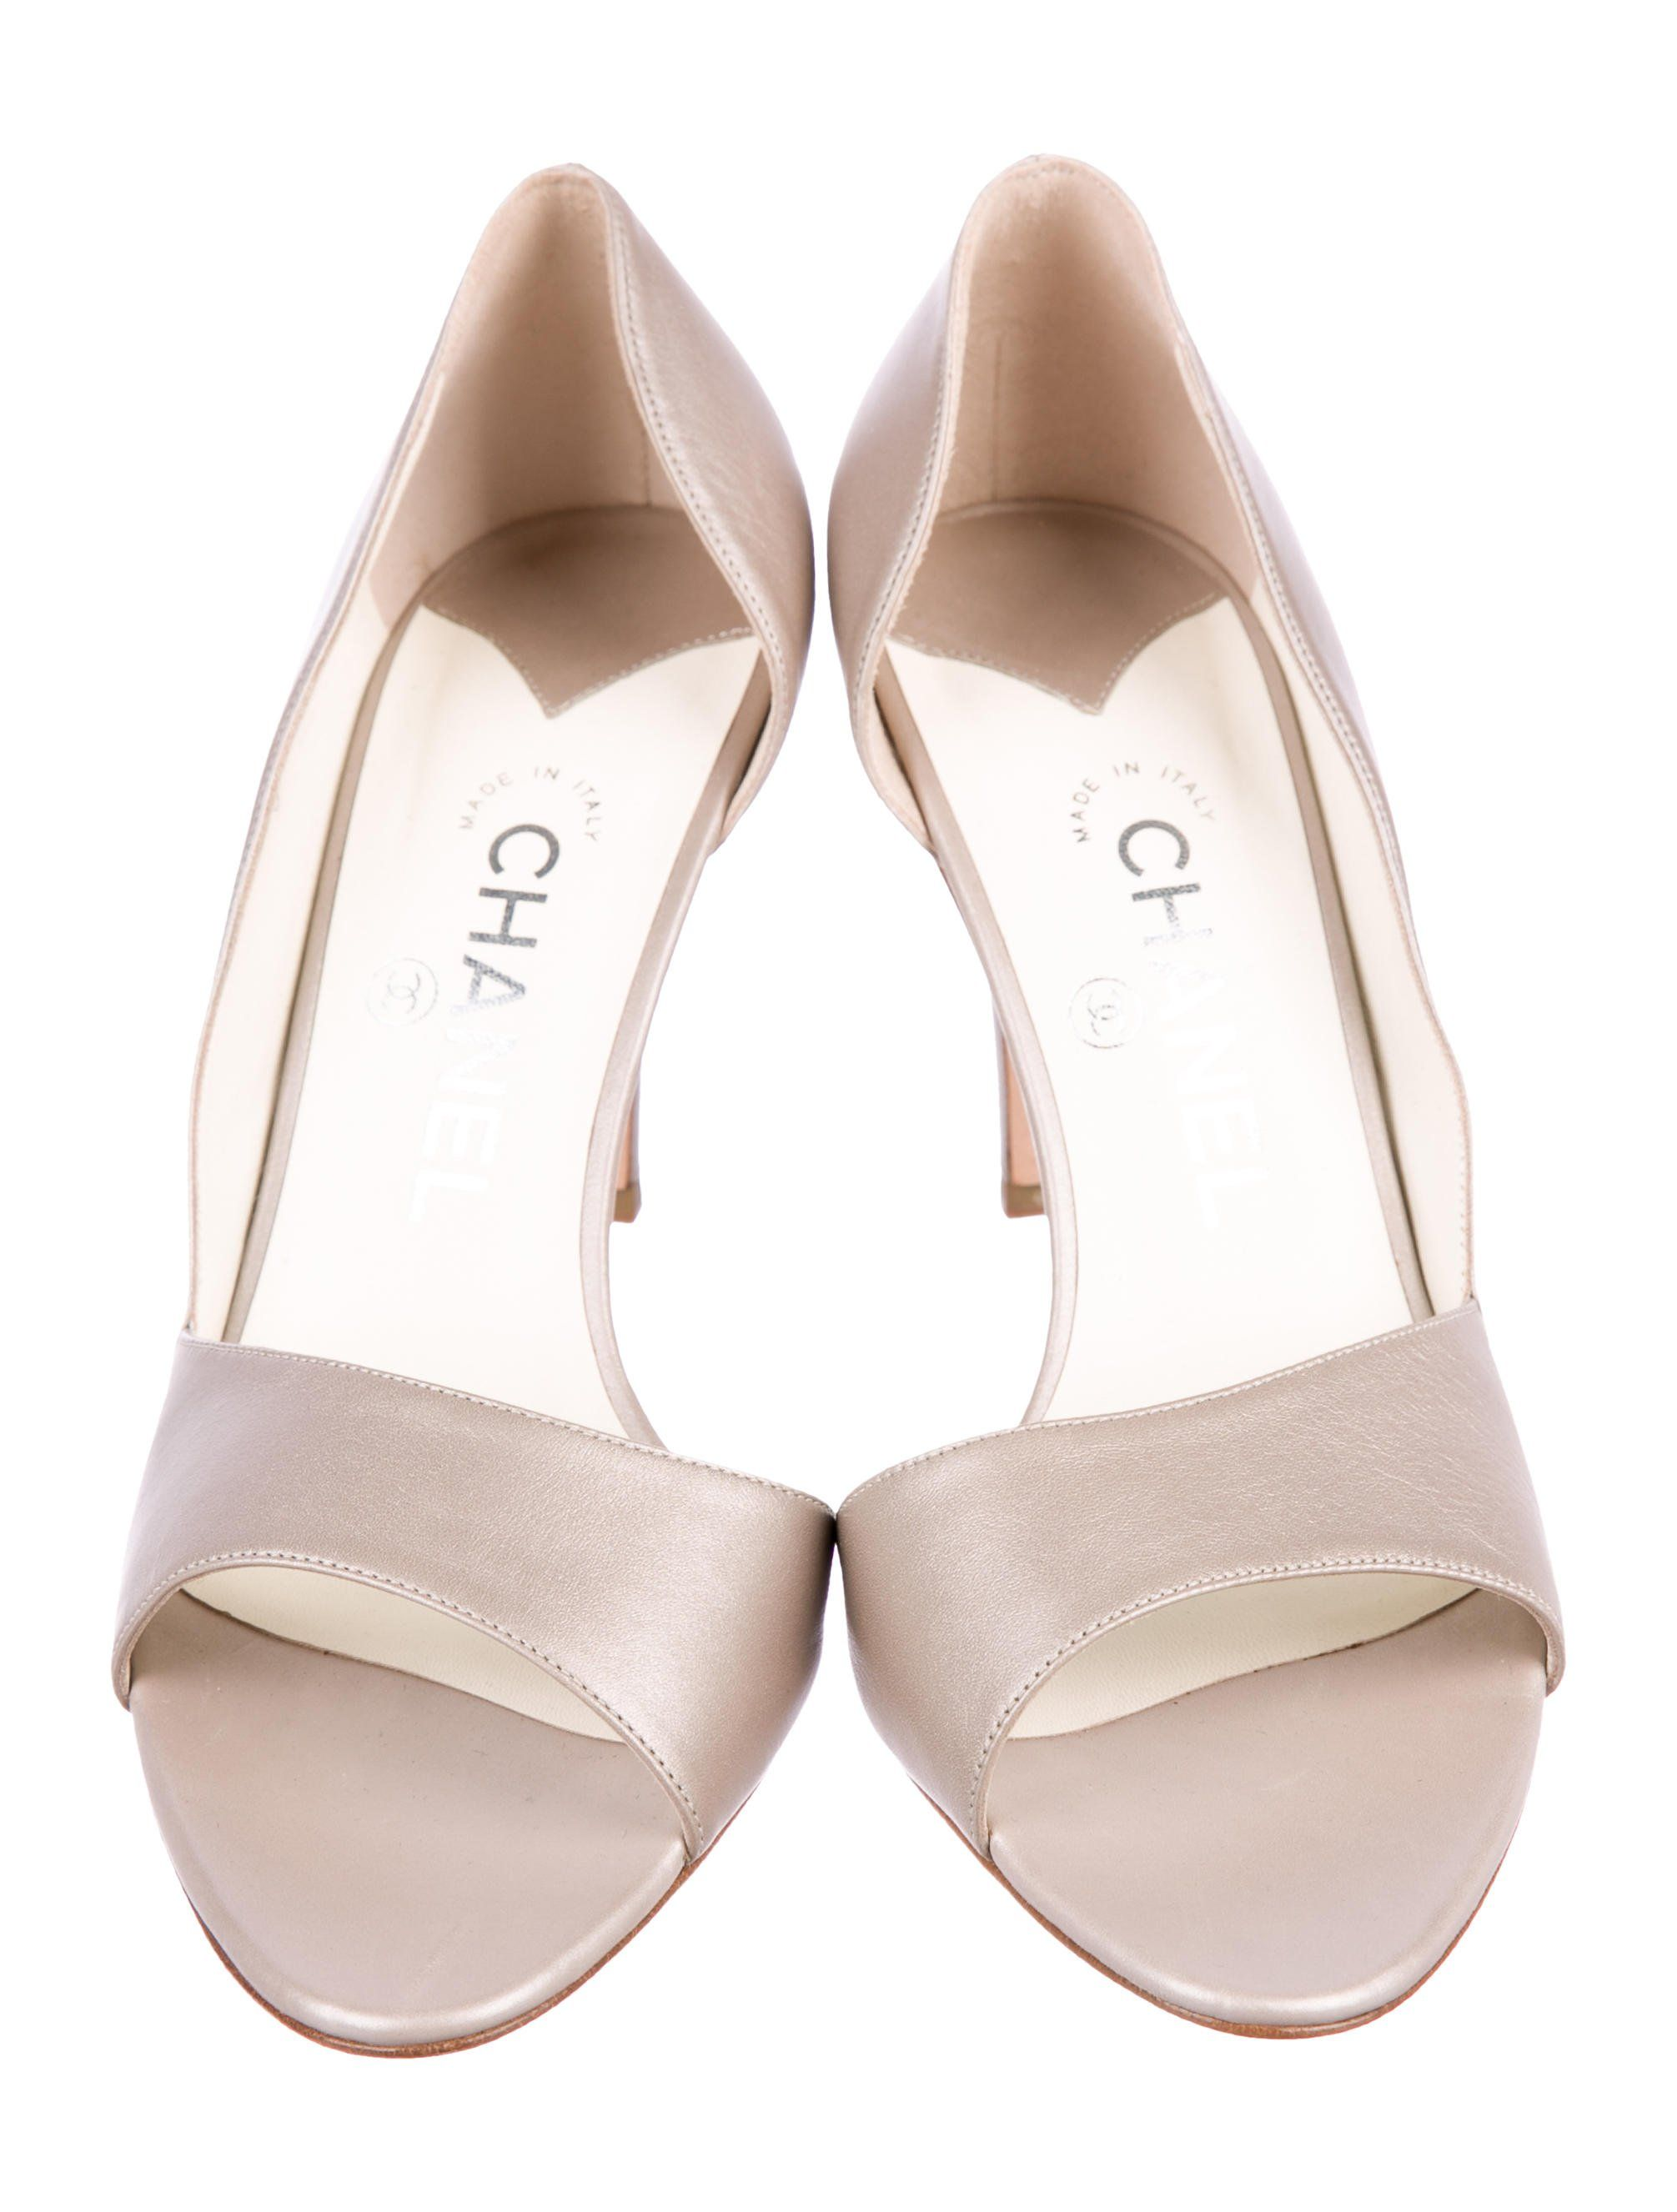 0f5da5aec01f Taupe metallic leather Chanel d Orsay pumps with tonal stitching ...